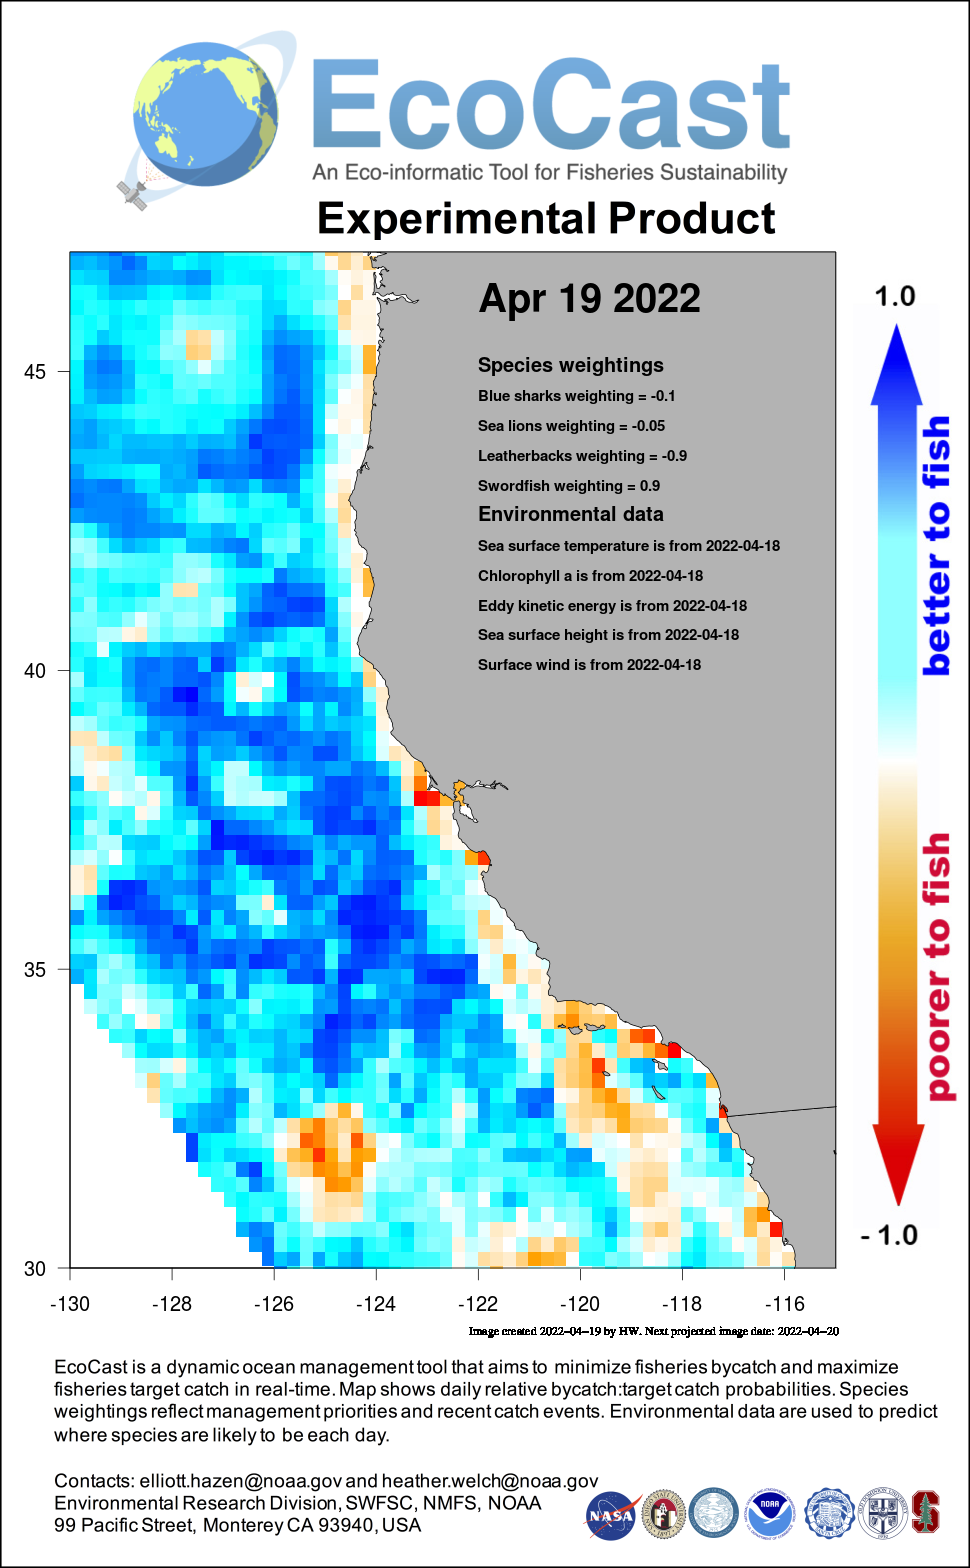 Mean sea surface temperature off Southern California - today